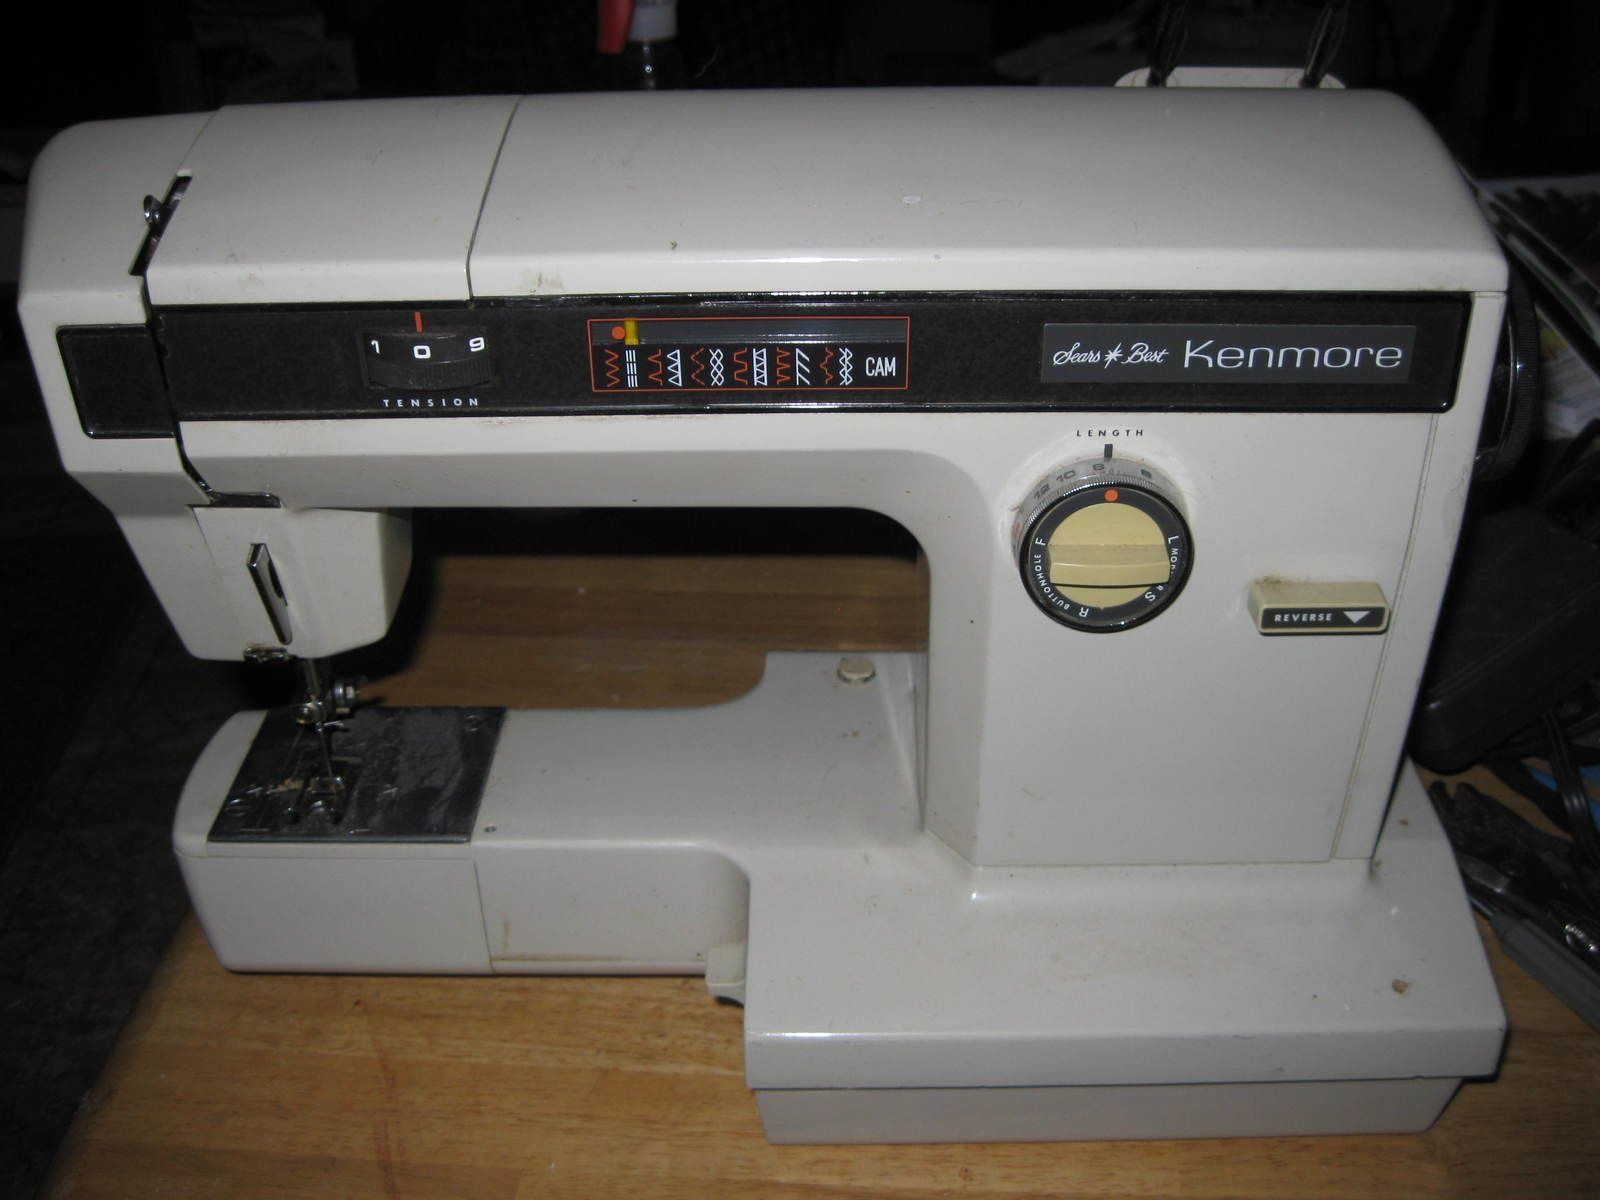 Sears Kenmore 158.1914 Free Arm Decorative Stitch Selector ...